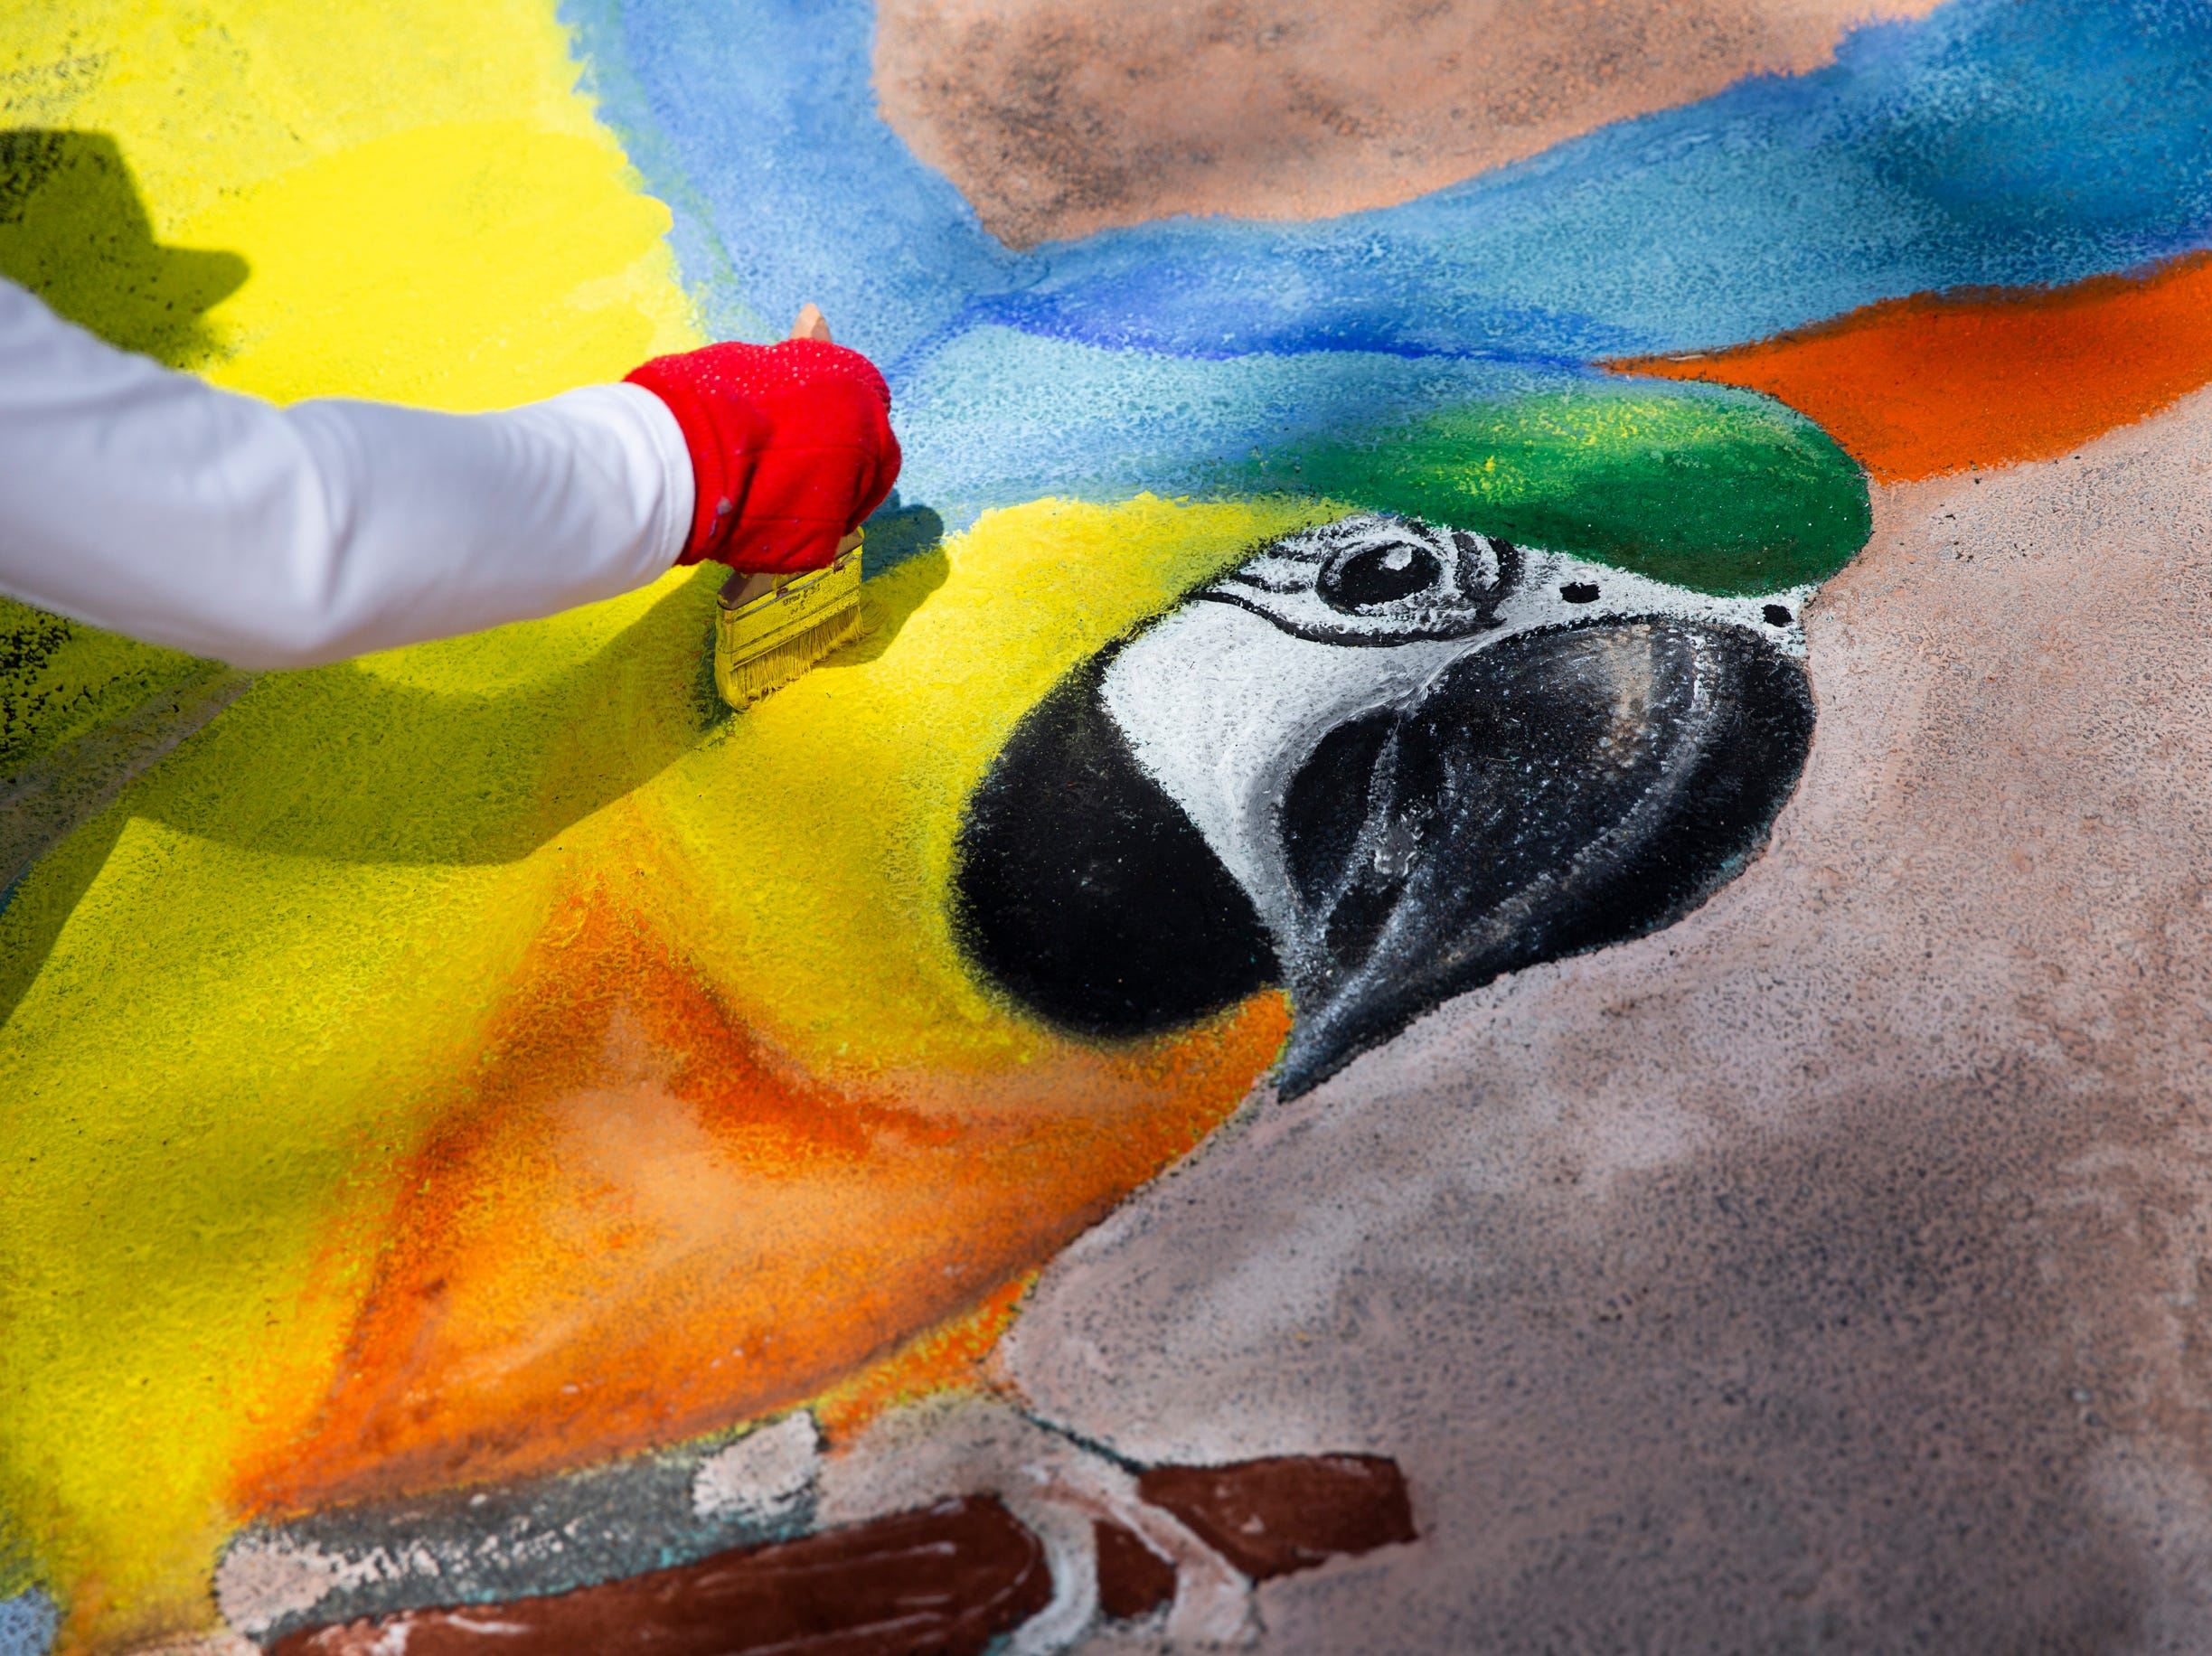 Joni Long works on her chalk artwork during the Naples Chalk Art festival on Fifth Avenue South on Saturday, March 9, 2019.